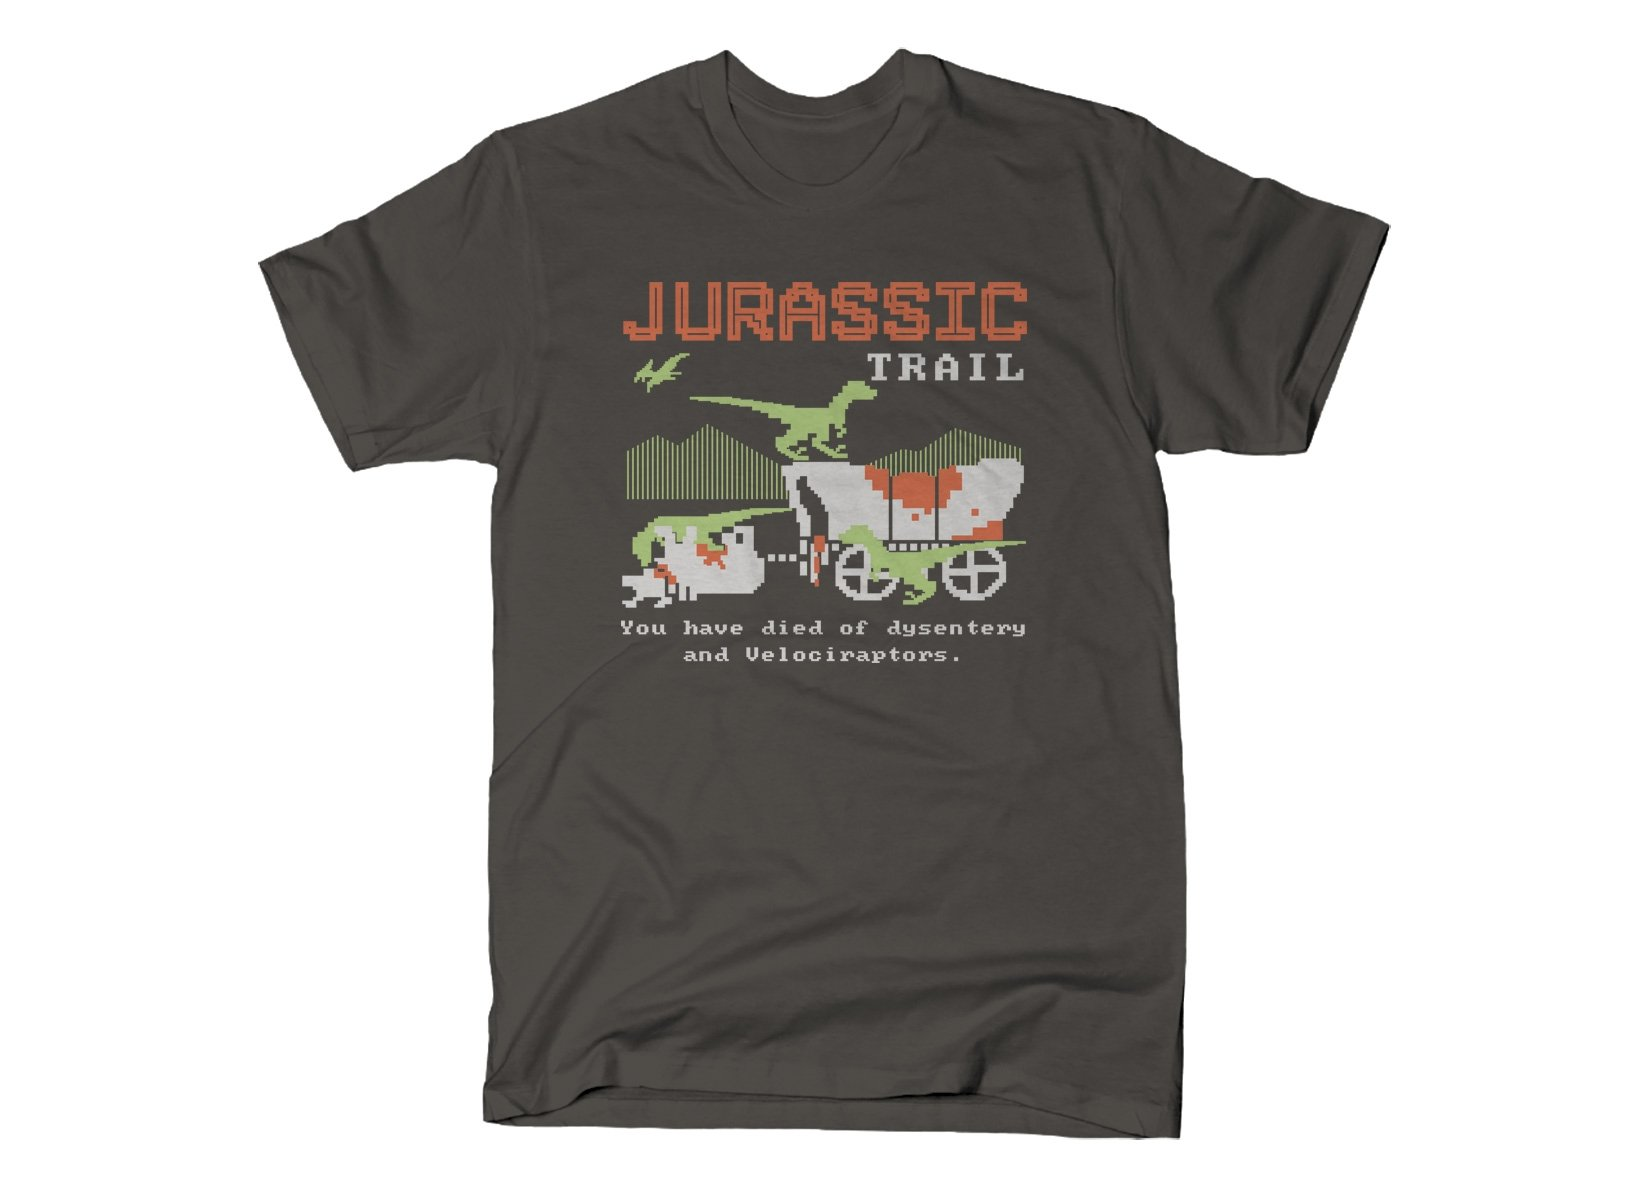 Jurassic Trail on Mens T-Shirt